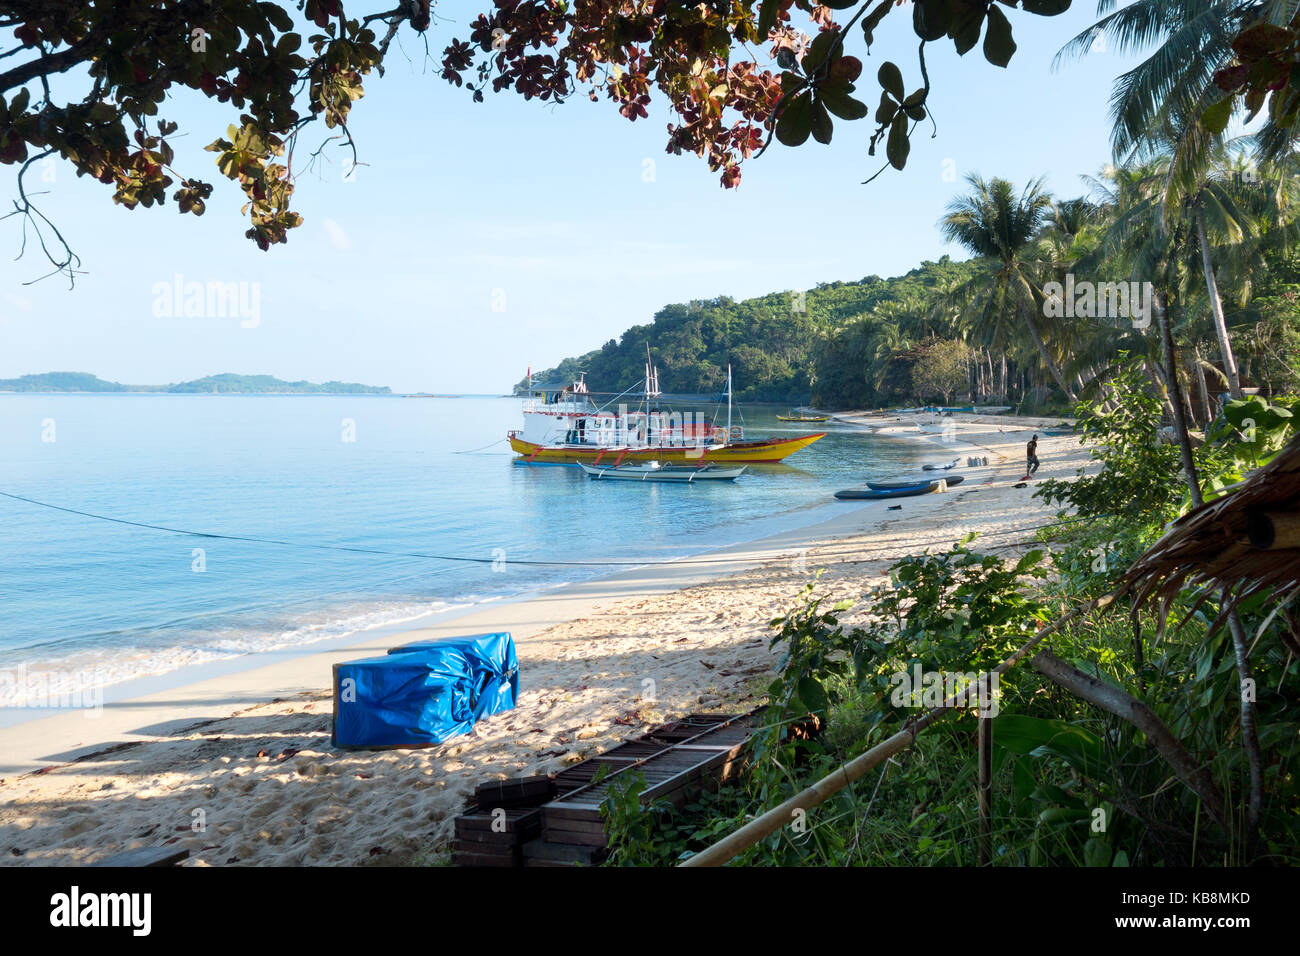 Philippines beach - beach camp on an island hopping holiday, El Nido, Palawan province, Philippines Asia - Stock Image